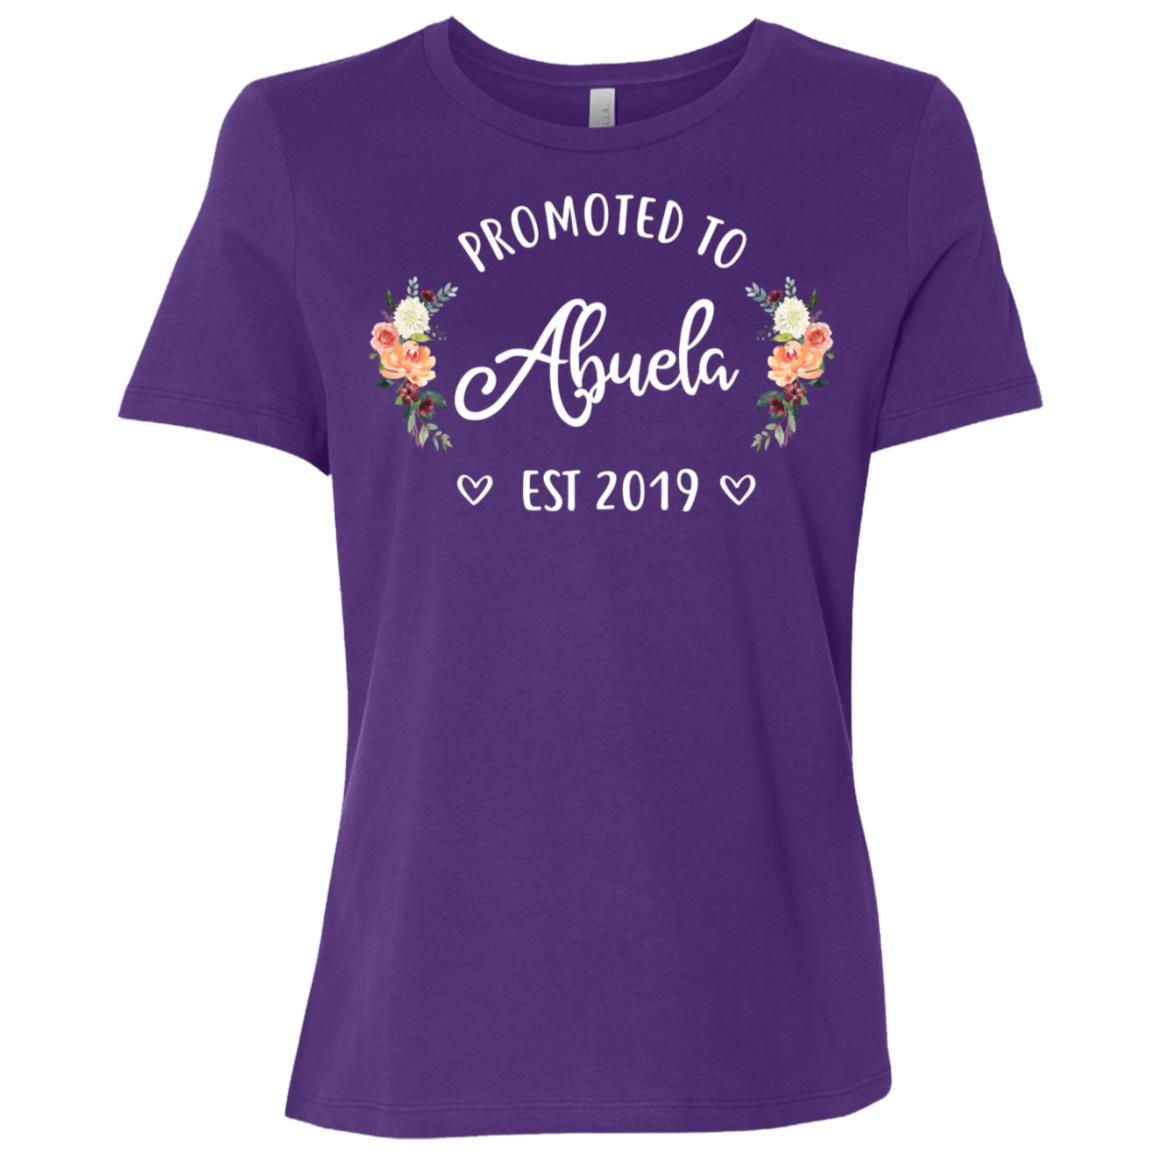 Promoted to Abuela Est 2019 New Abuela Women Short Sleeve T-Shirt